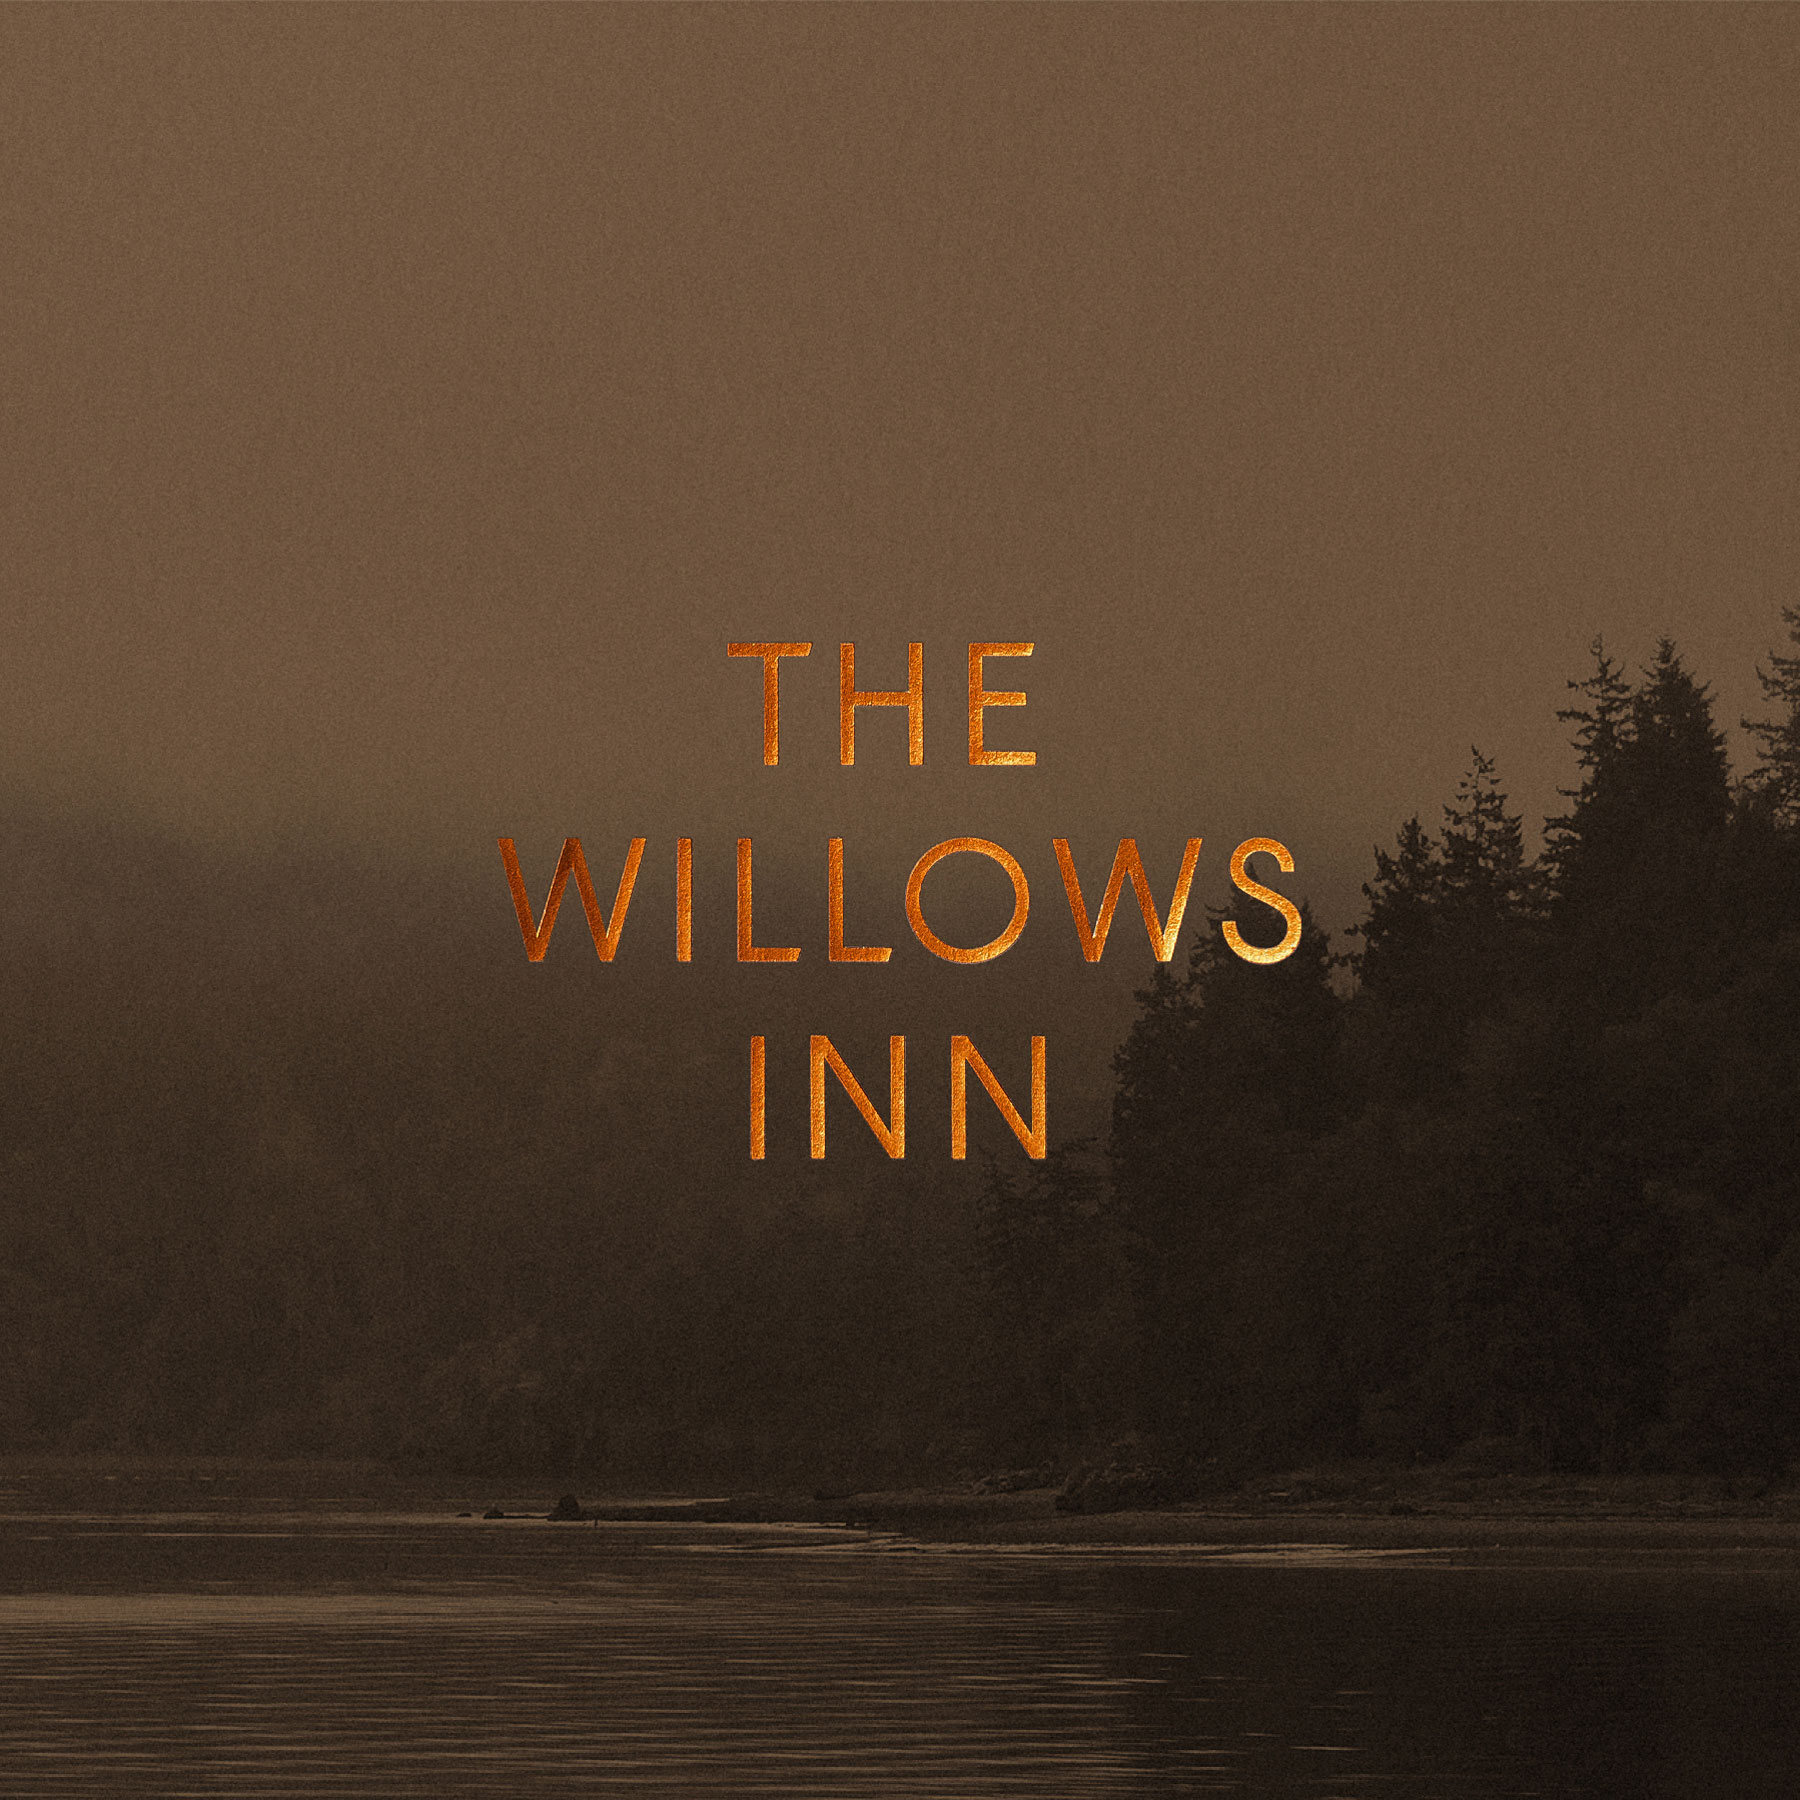 the-willows-inn-wordmark-foil-detail